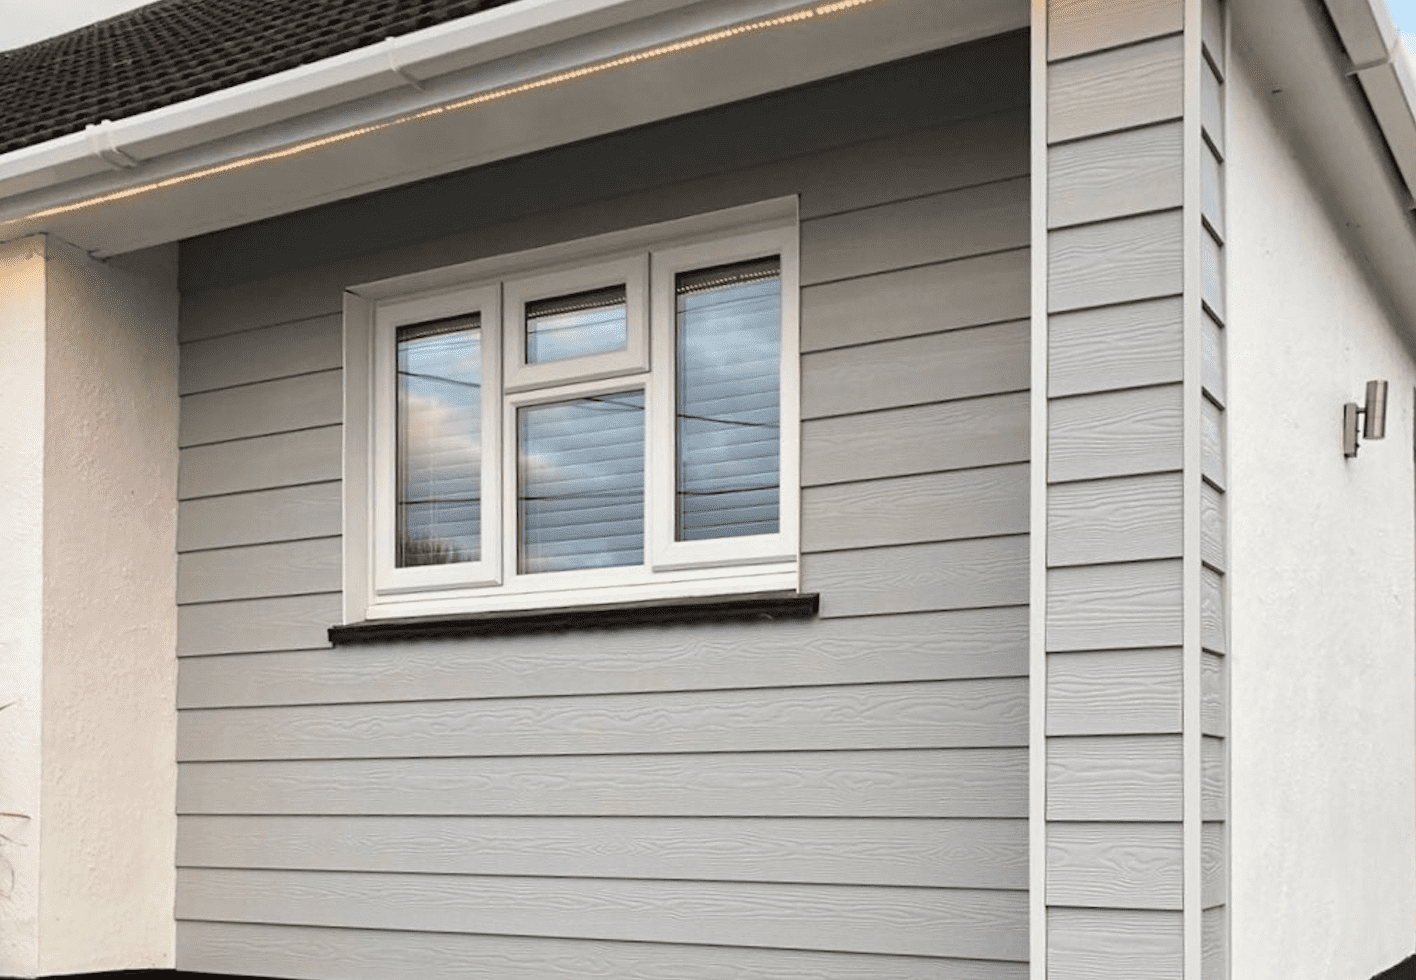 Guttering and Cladding in Essex